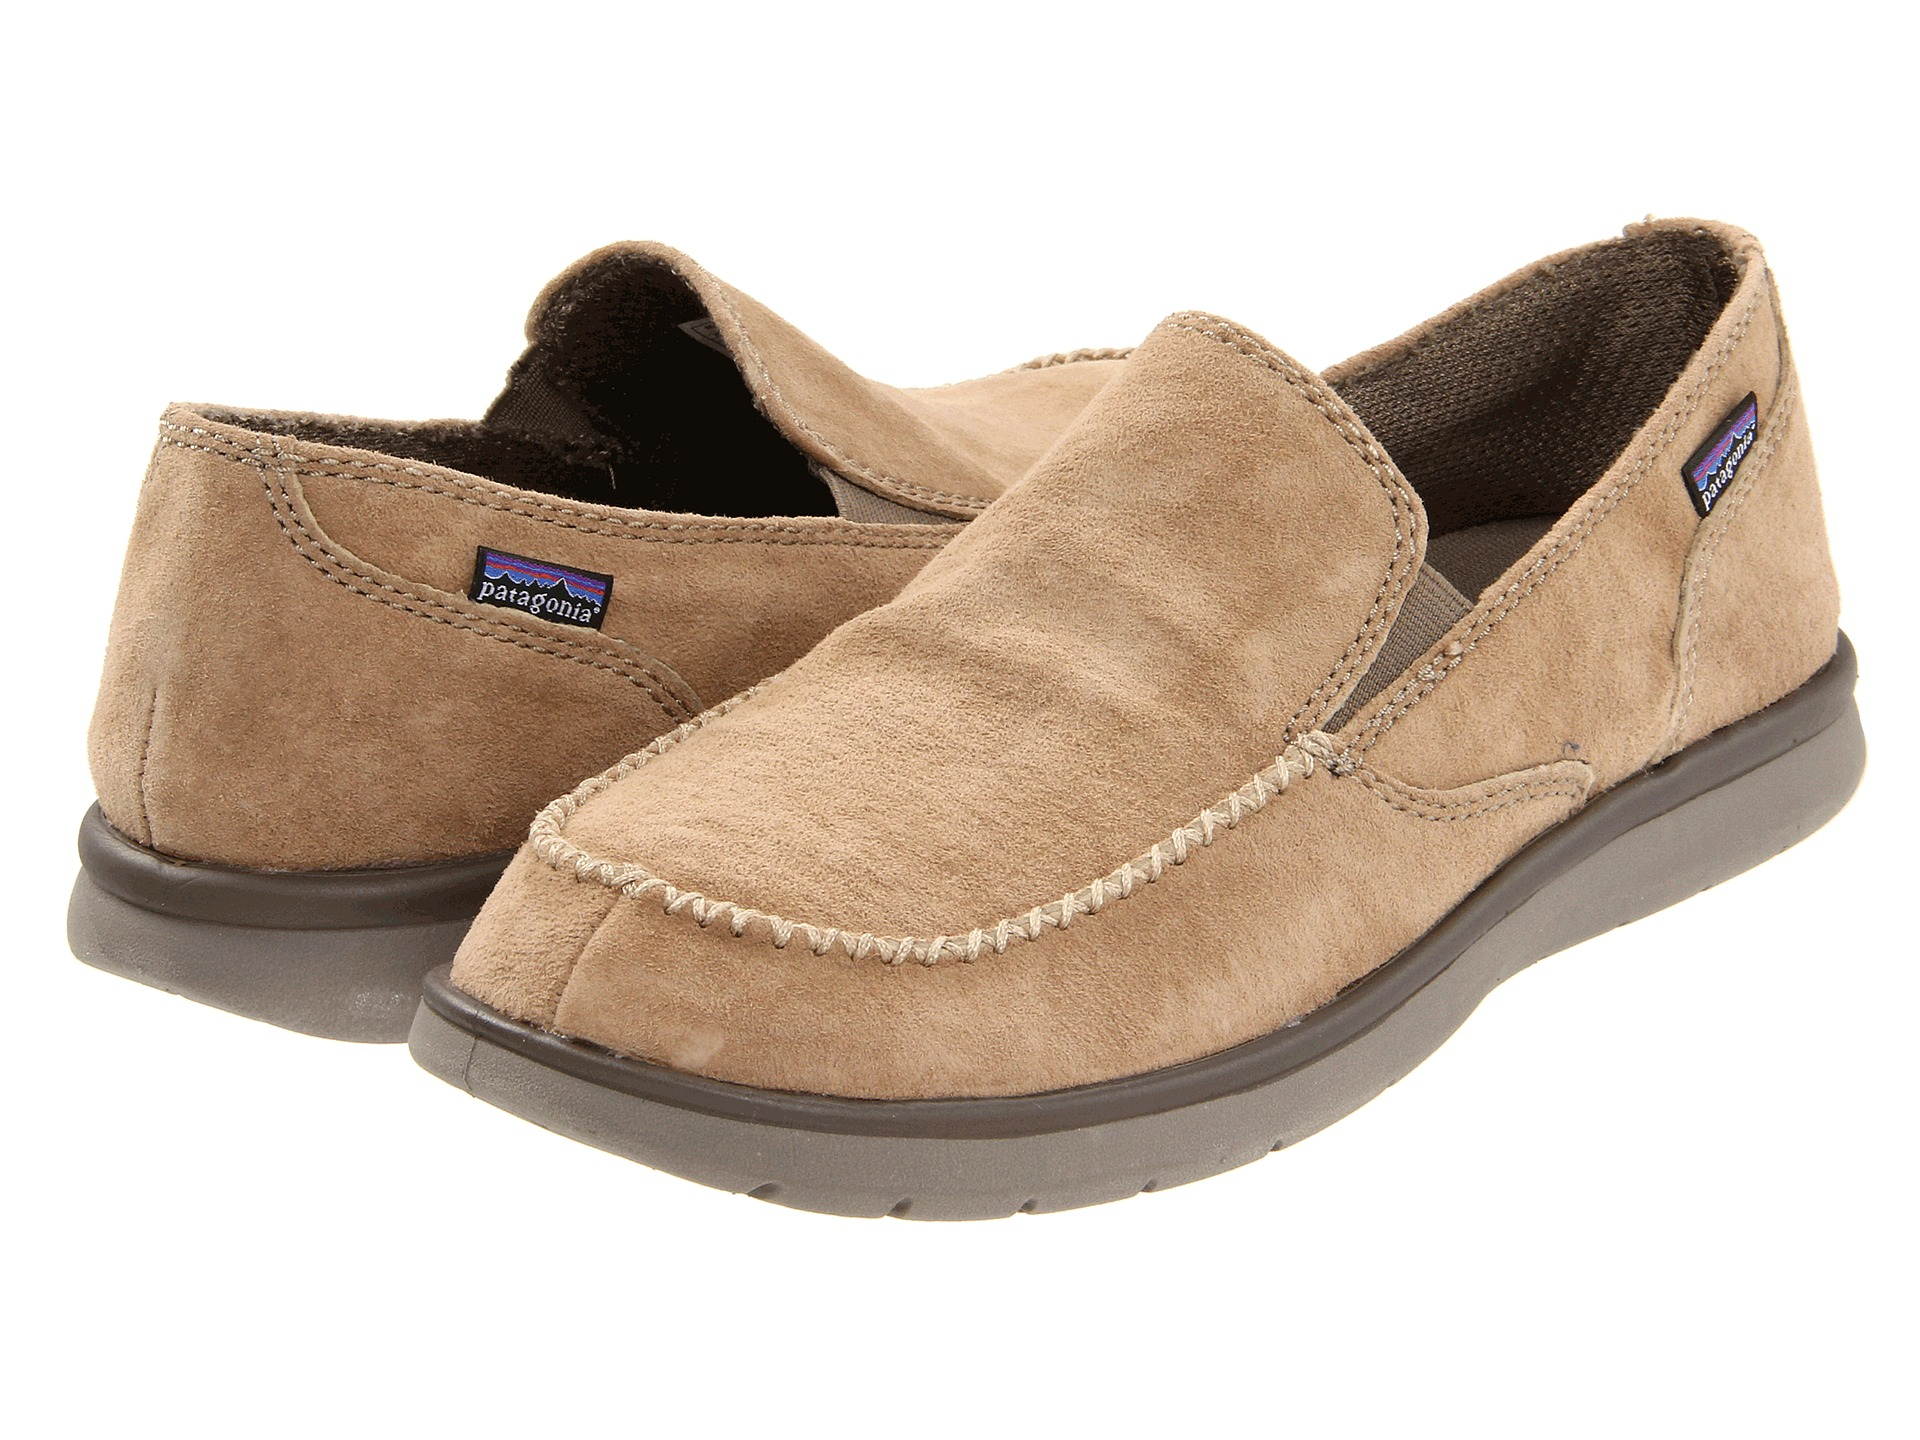 Patagonia Maui Smooth in Natural for